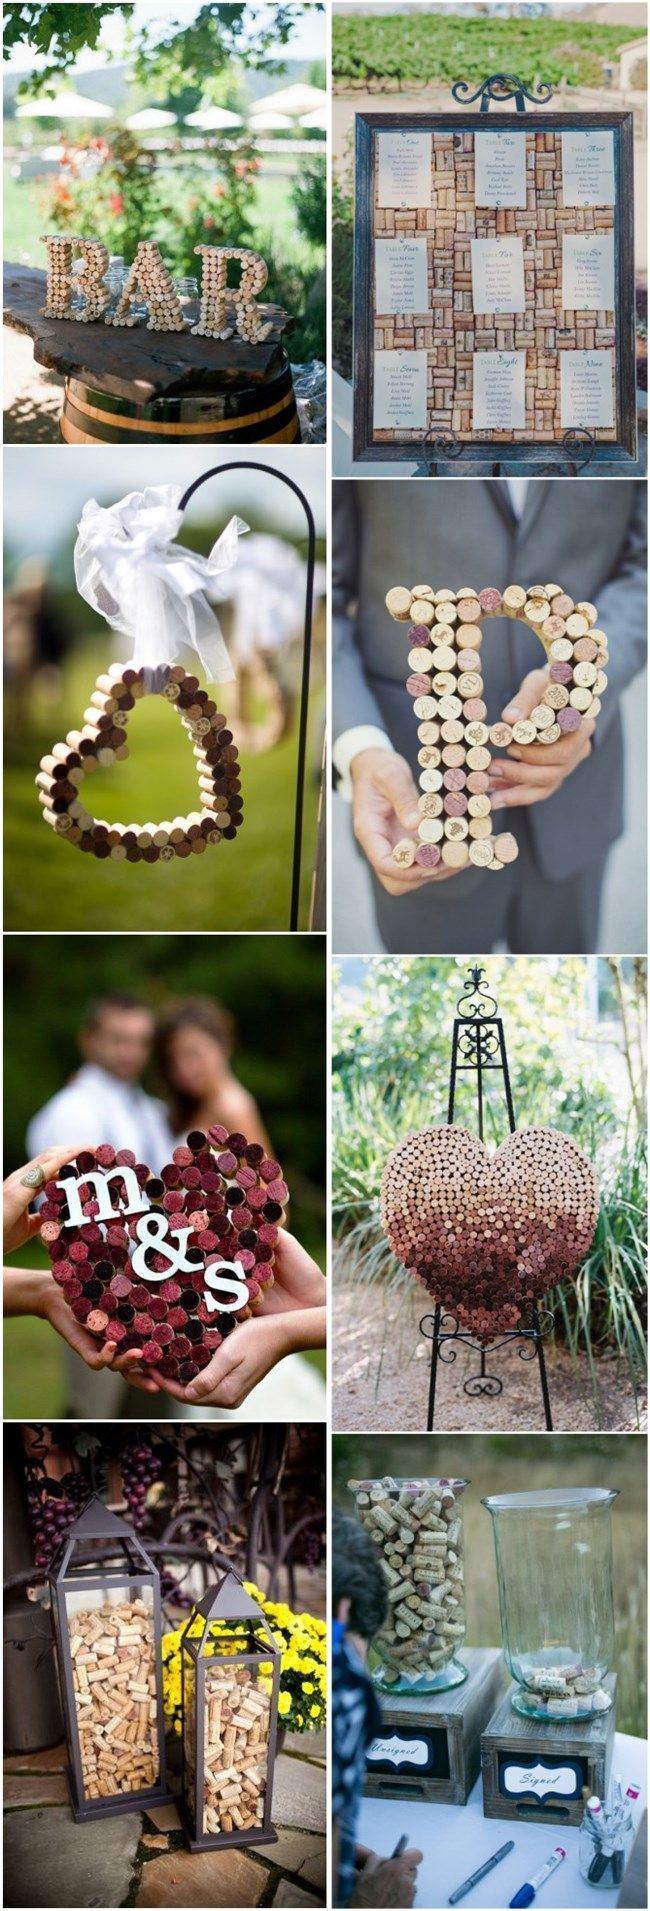 30 Wine Corks Country Wedding Ideas (with Tutorials)